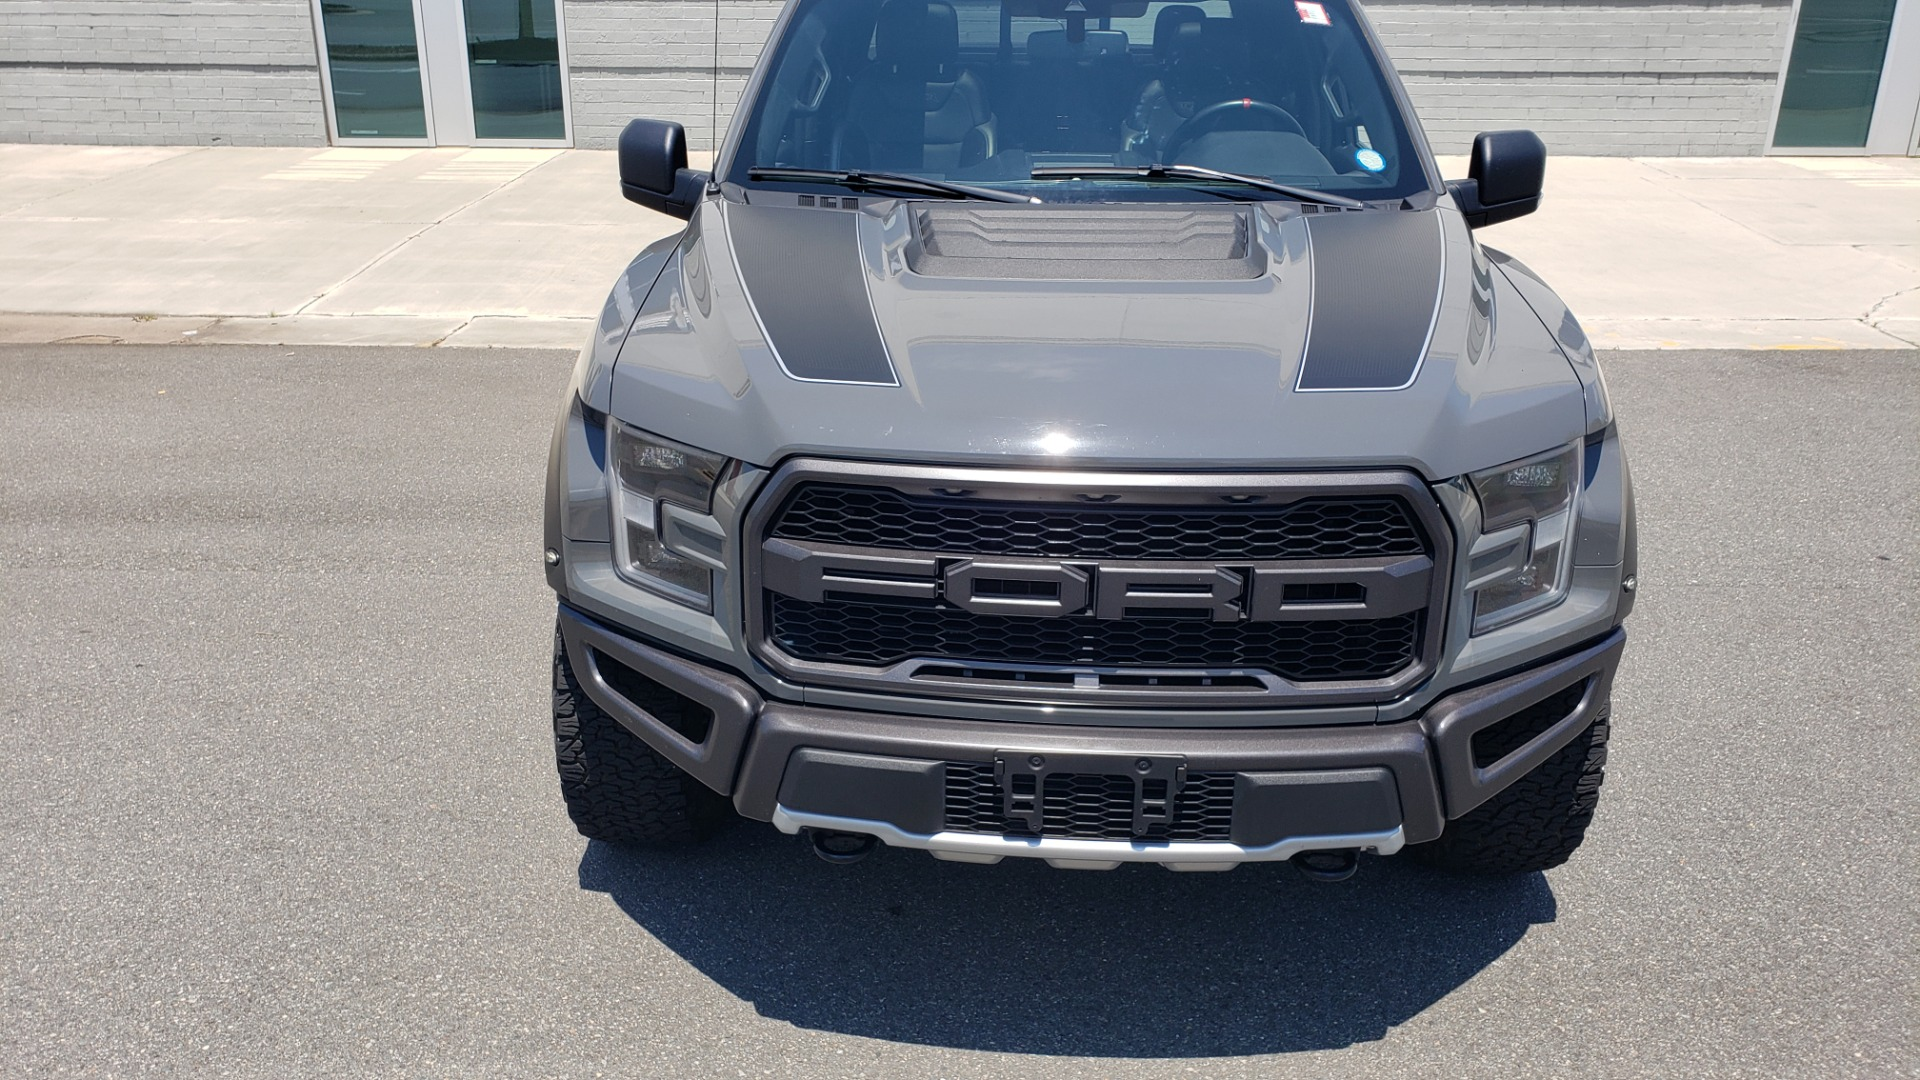 Used 2020 Ford F-150 RAPTOR 4X4 SUPERCREW / 3.5L ECOBOOST / 10-SPD AUTO / SUNROOF / REARVIEW for sale $82,500 at Formula Imports in Charlotte NC 28227 28